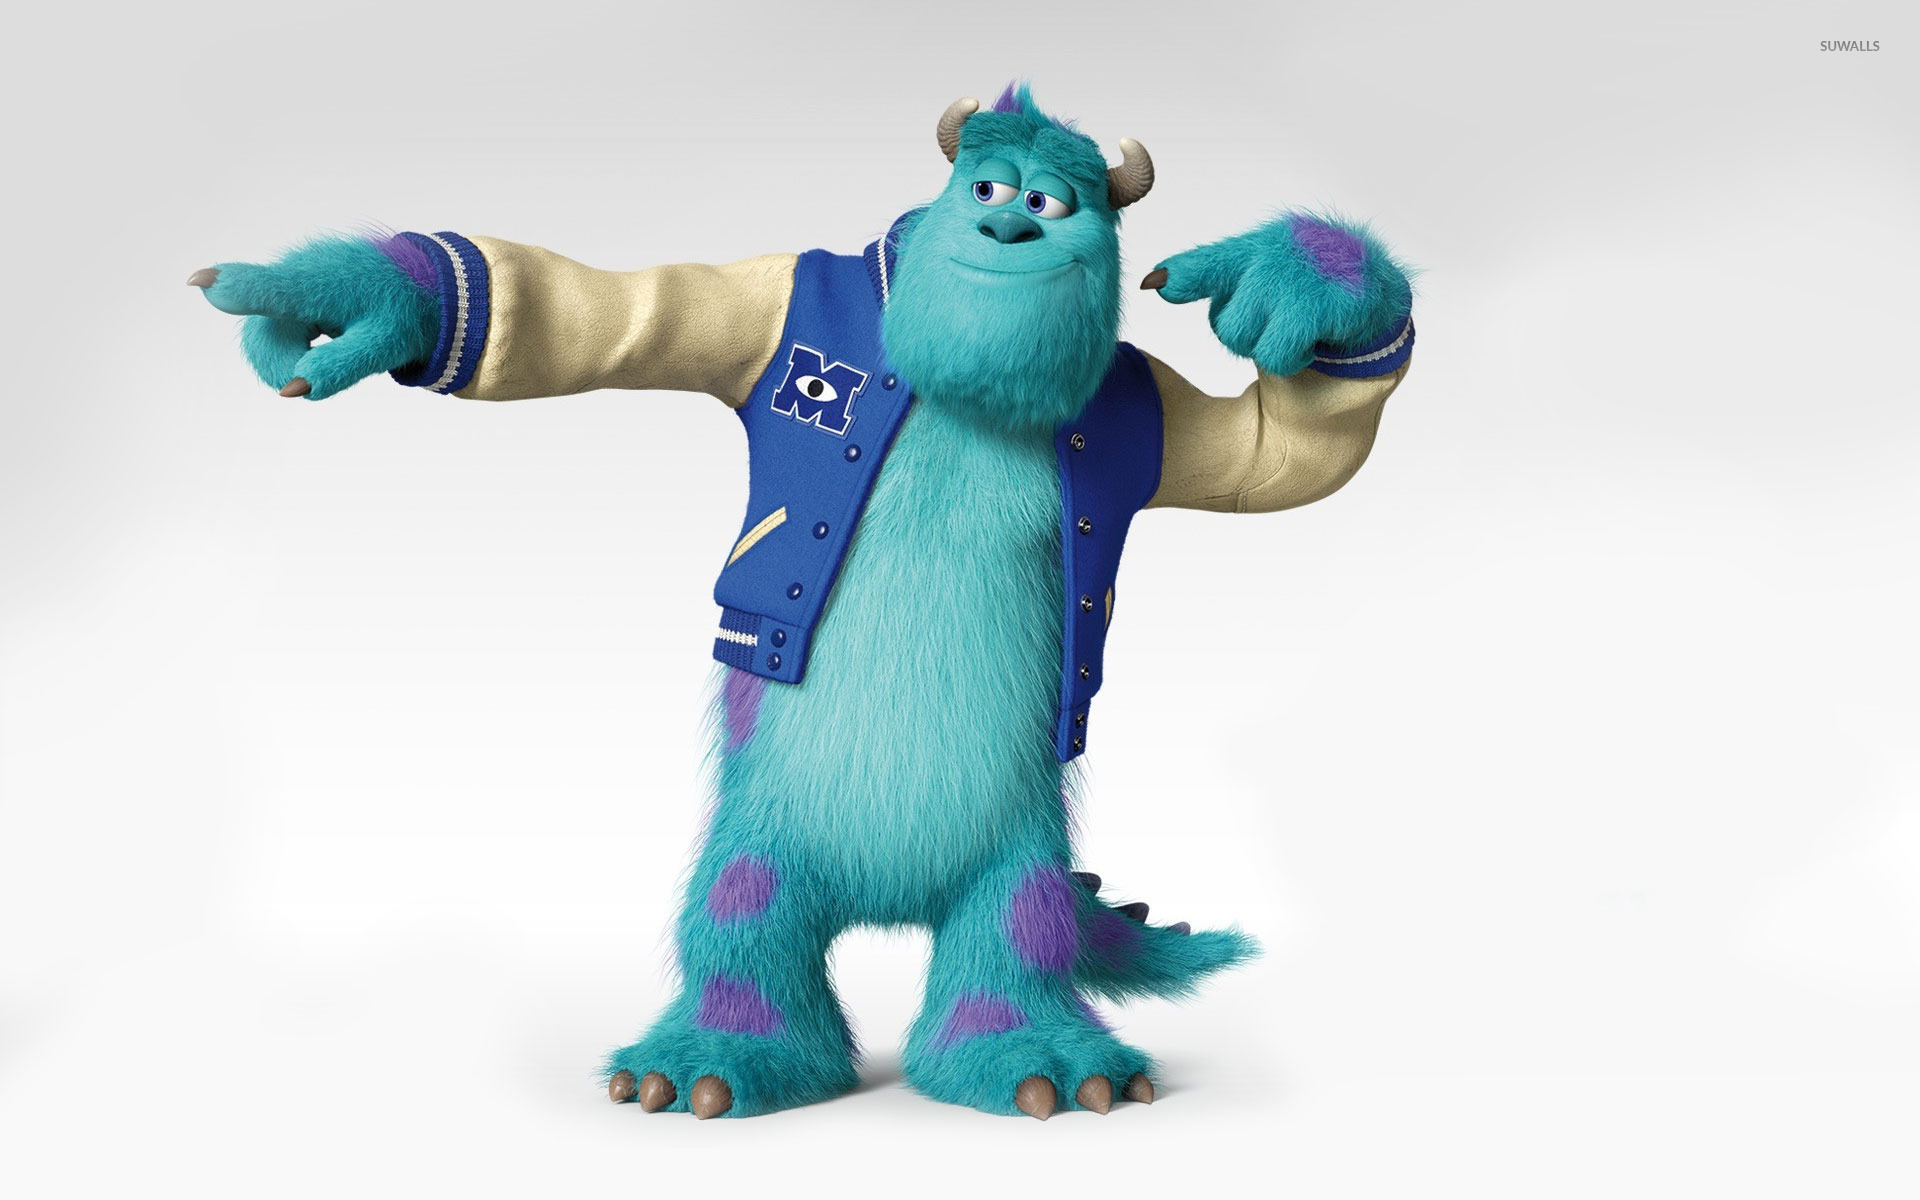 Sulley monsters university wallpaper cartoon wallpapers 20636 sulley monsters university wallpaper voltagebd Images